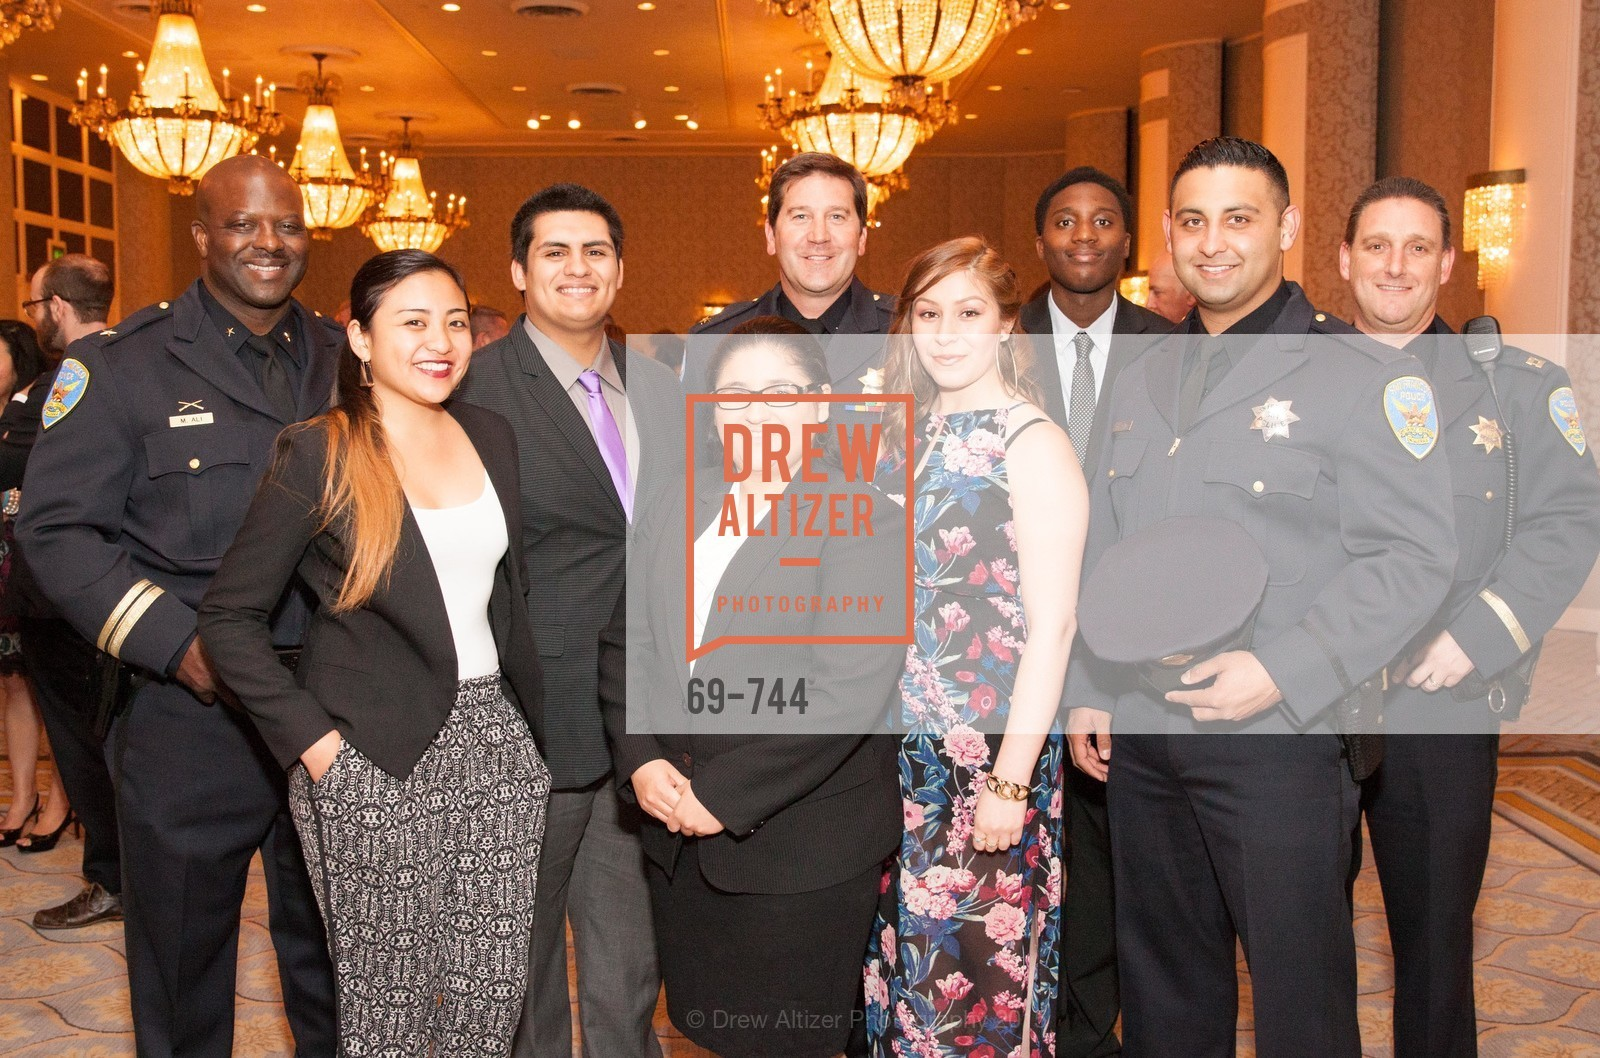 Mikail Ali, Aeris Velasco, Joe Armijo, Carmen Sosa, Rob O'Sullivan, Khari Brown, Yossef Azim, Greg McEachern, Celebration of Launch of SHYP in Los Angeles, US, May 21st, 2015,Drew Altizer, Drew Altizer Photography, full-service agency, private events, San Francisco photographer, photographer california